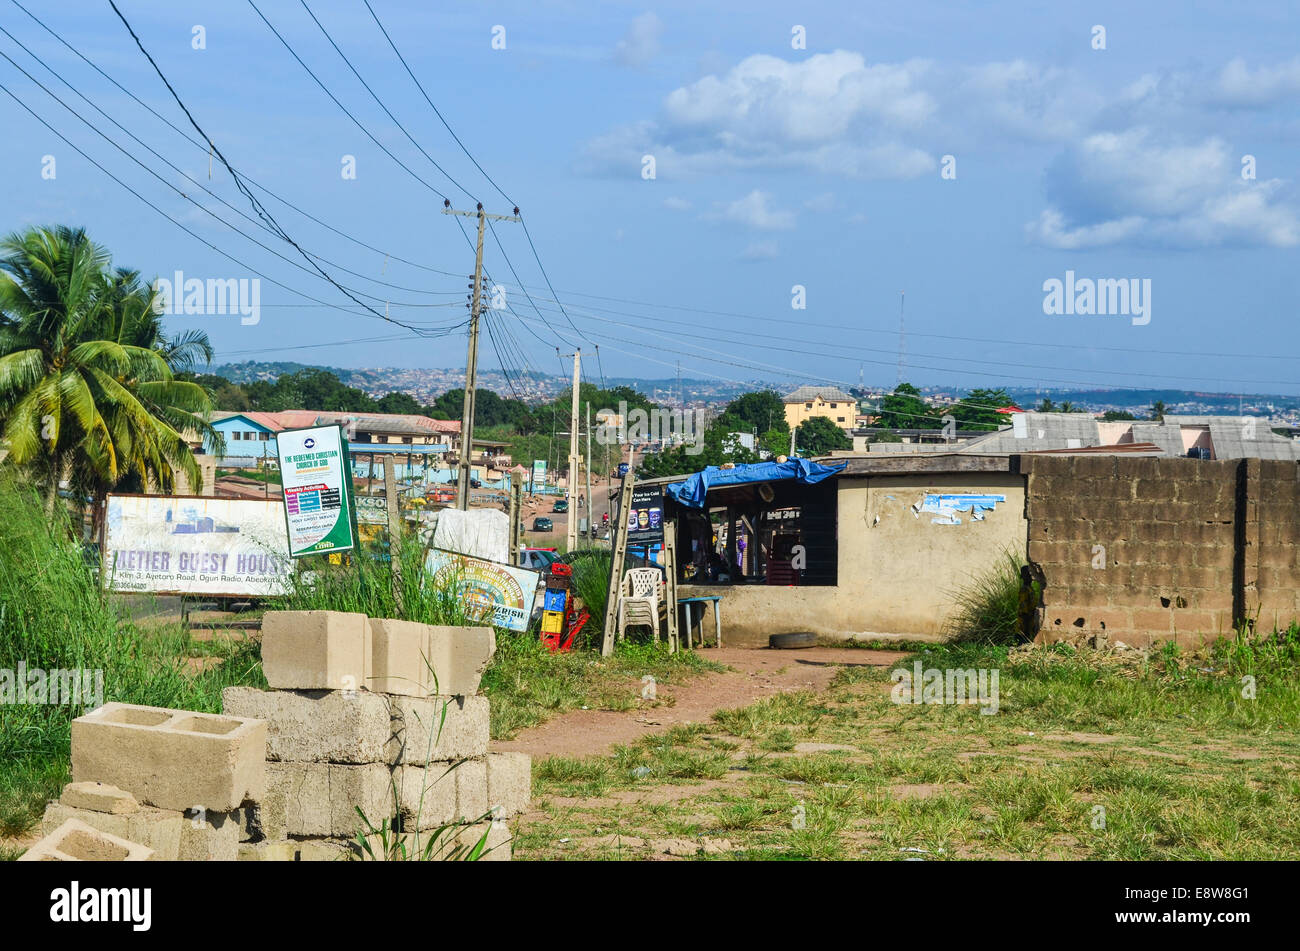 Bricks for construction at the entrance of the city of Abeokuta, Nigeria, Ogun State - Stock Image